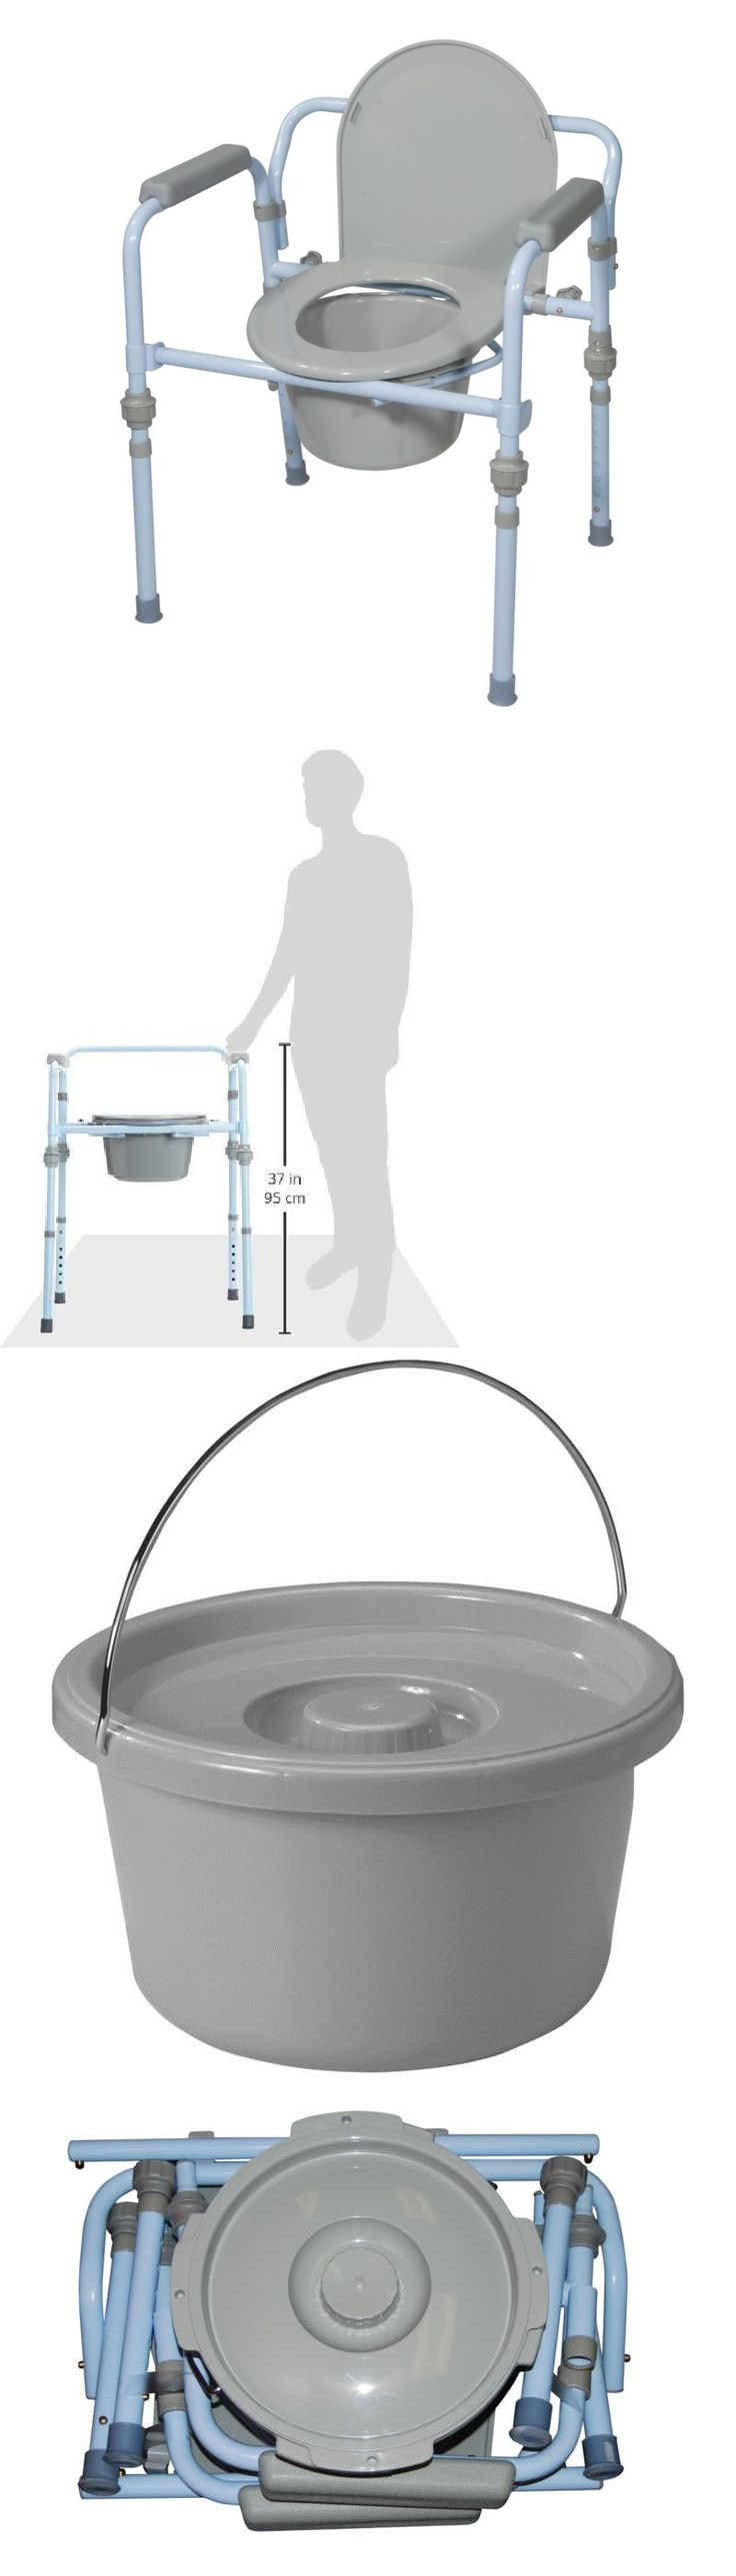 Best 20+ Toilet chair ideas on Pinterest | Toilet tent, Outdoors ...